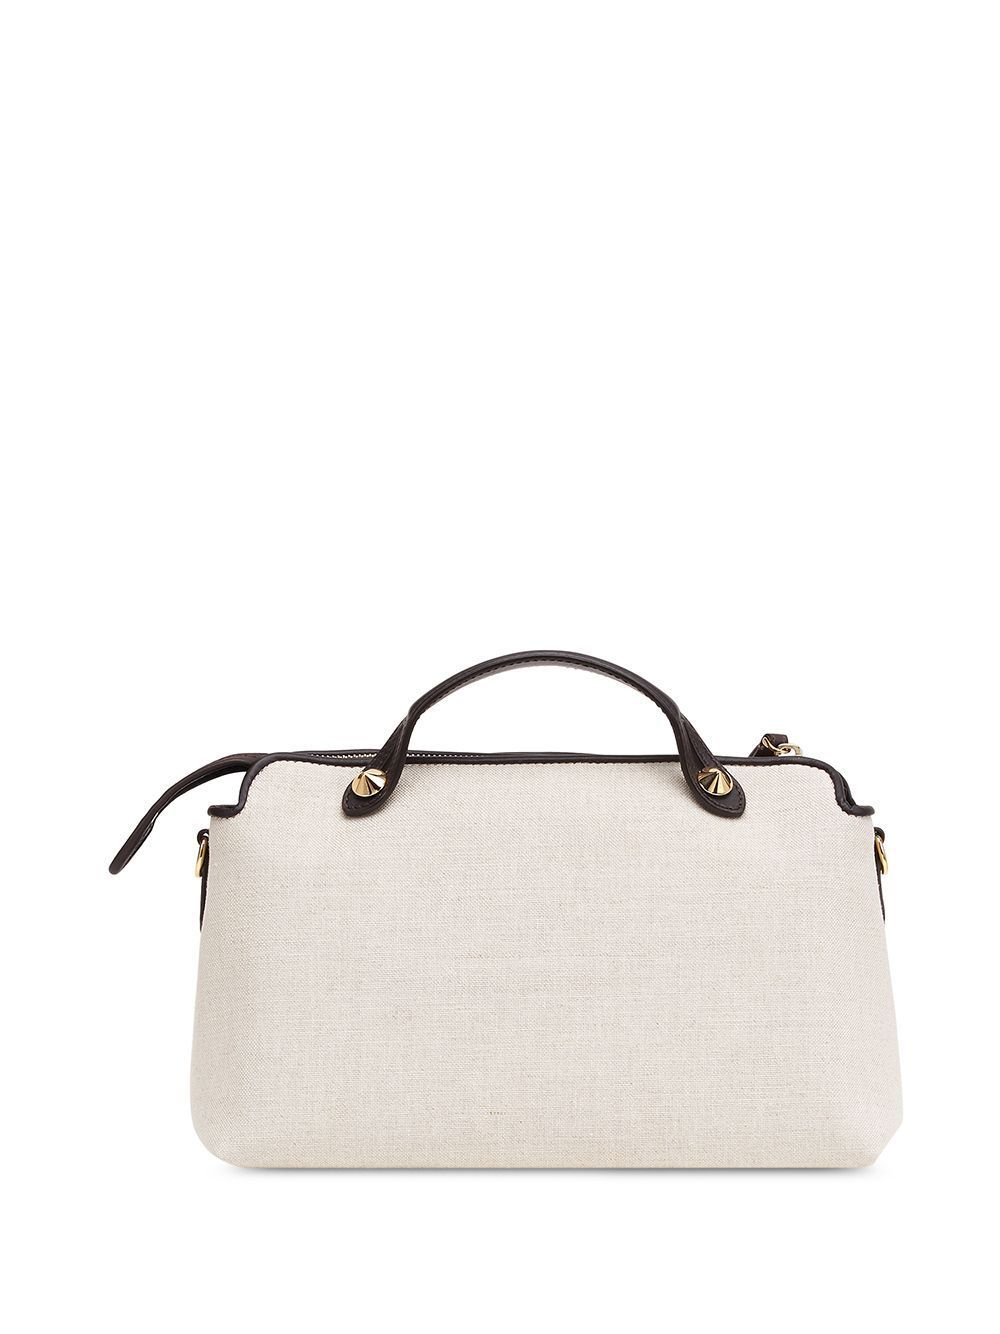 FENDI WOMEN'S 8BL146ABV9F1B8Q WHITE COTTON HANDBAG